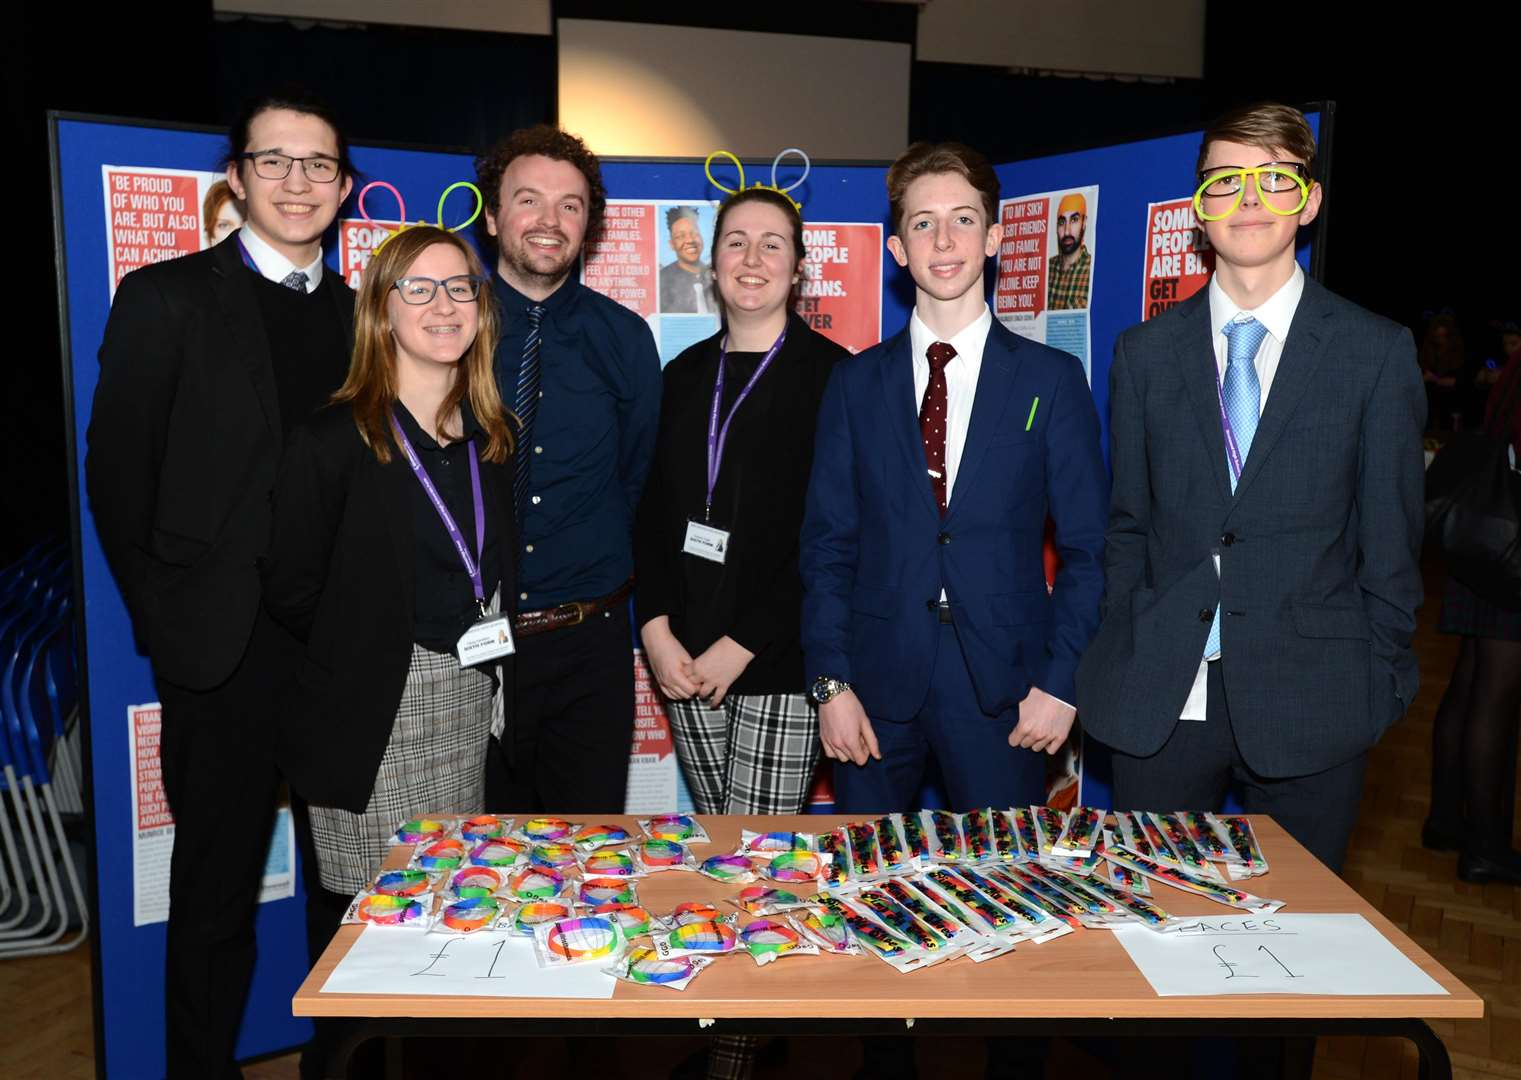 Birchwood School, Bishops Stortford. LGBGT+ event. Yr12 pupils with Stonewall trainers Joe Harlow (3rd left) ans Stonewall Advocate Jonathan Cowan (left). .Pic: Vikki Lince. (7569027)